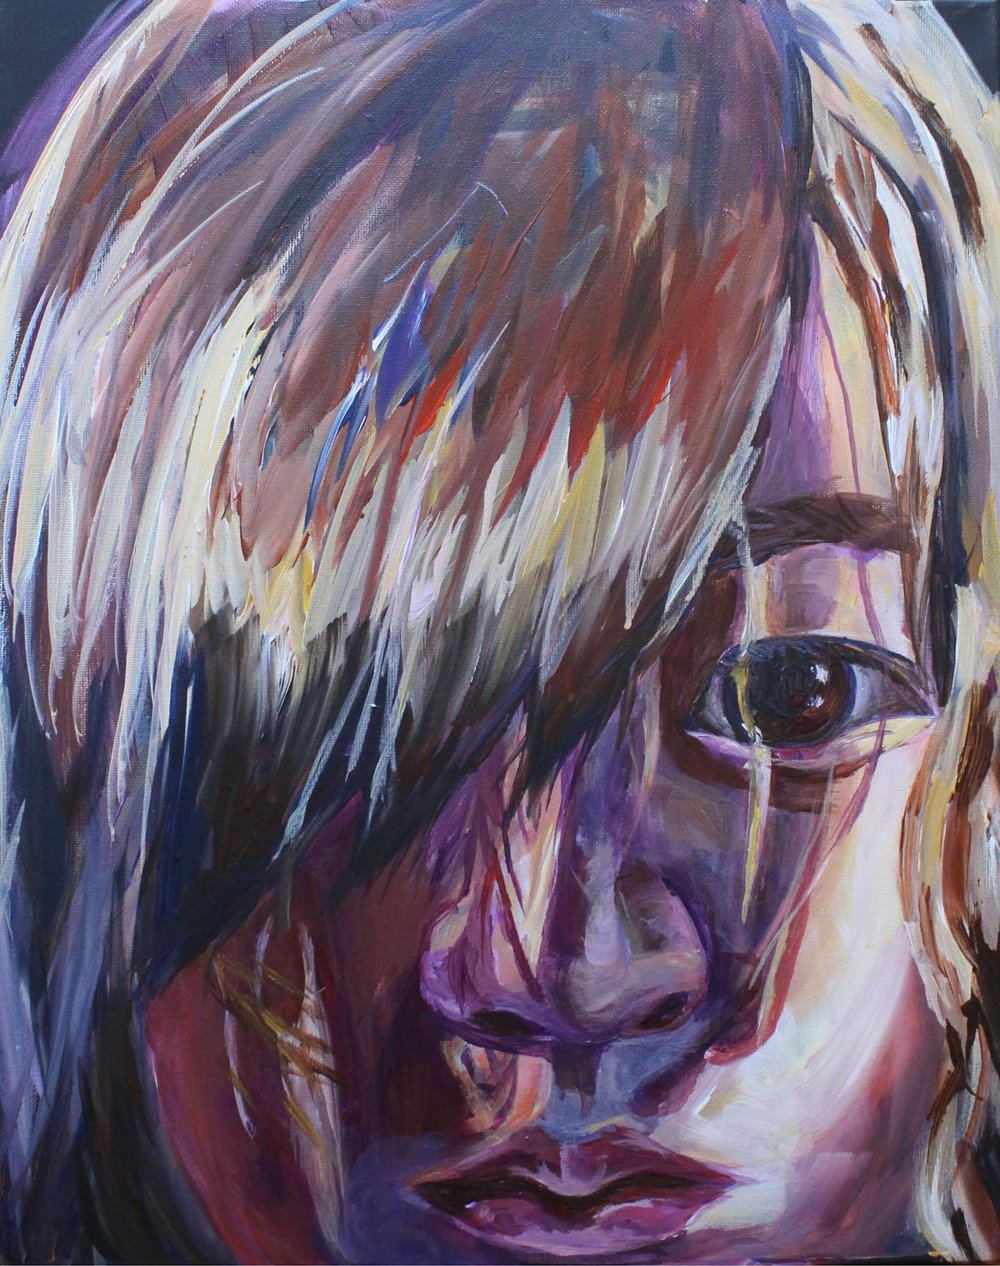 The painting is a portrait of a person staring into the camera as the sun creates interesting shadows on her face. Purples browns and yellows are used to color her hair. One eye is shielded by the bangs that cover half of her unsmiling face as the rights cheek is illuminated by white light.